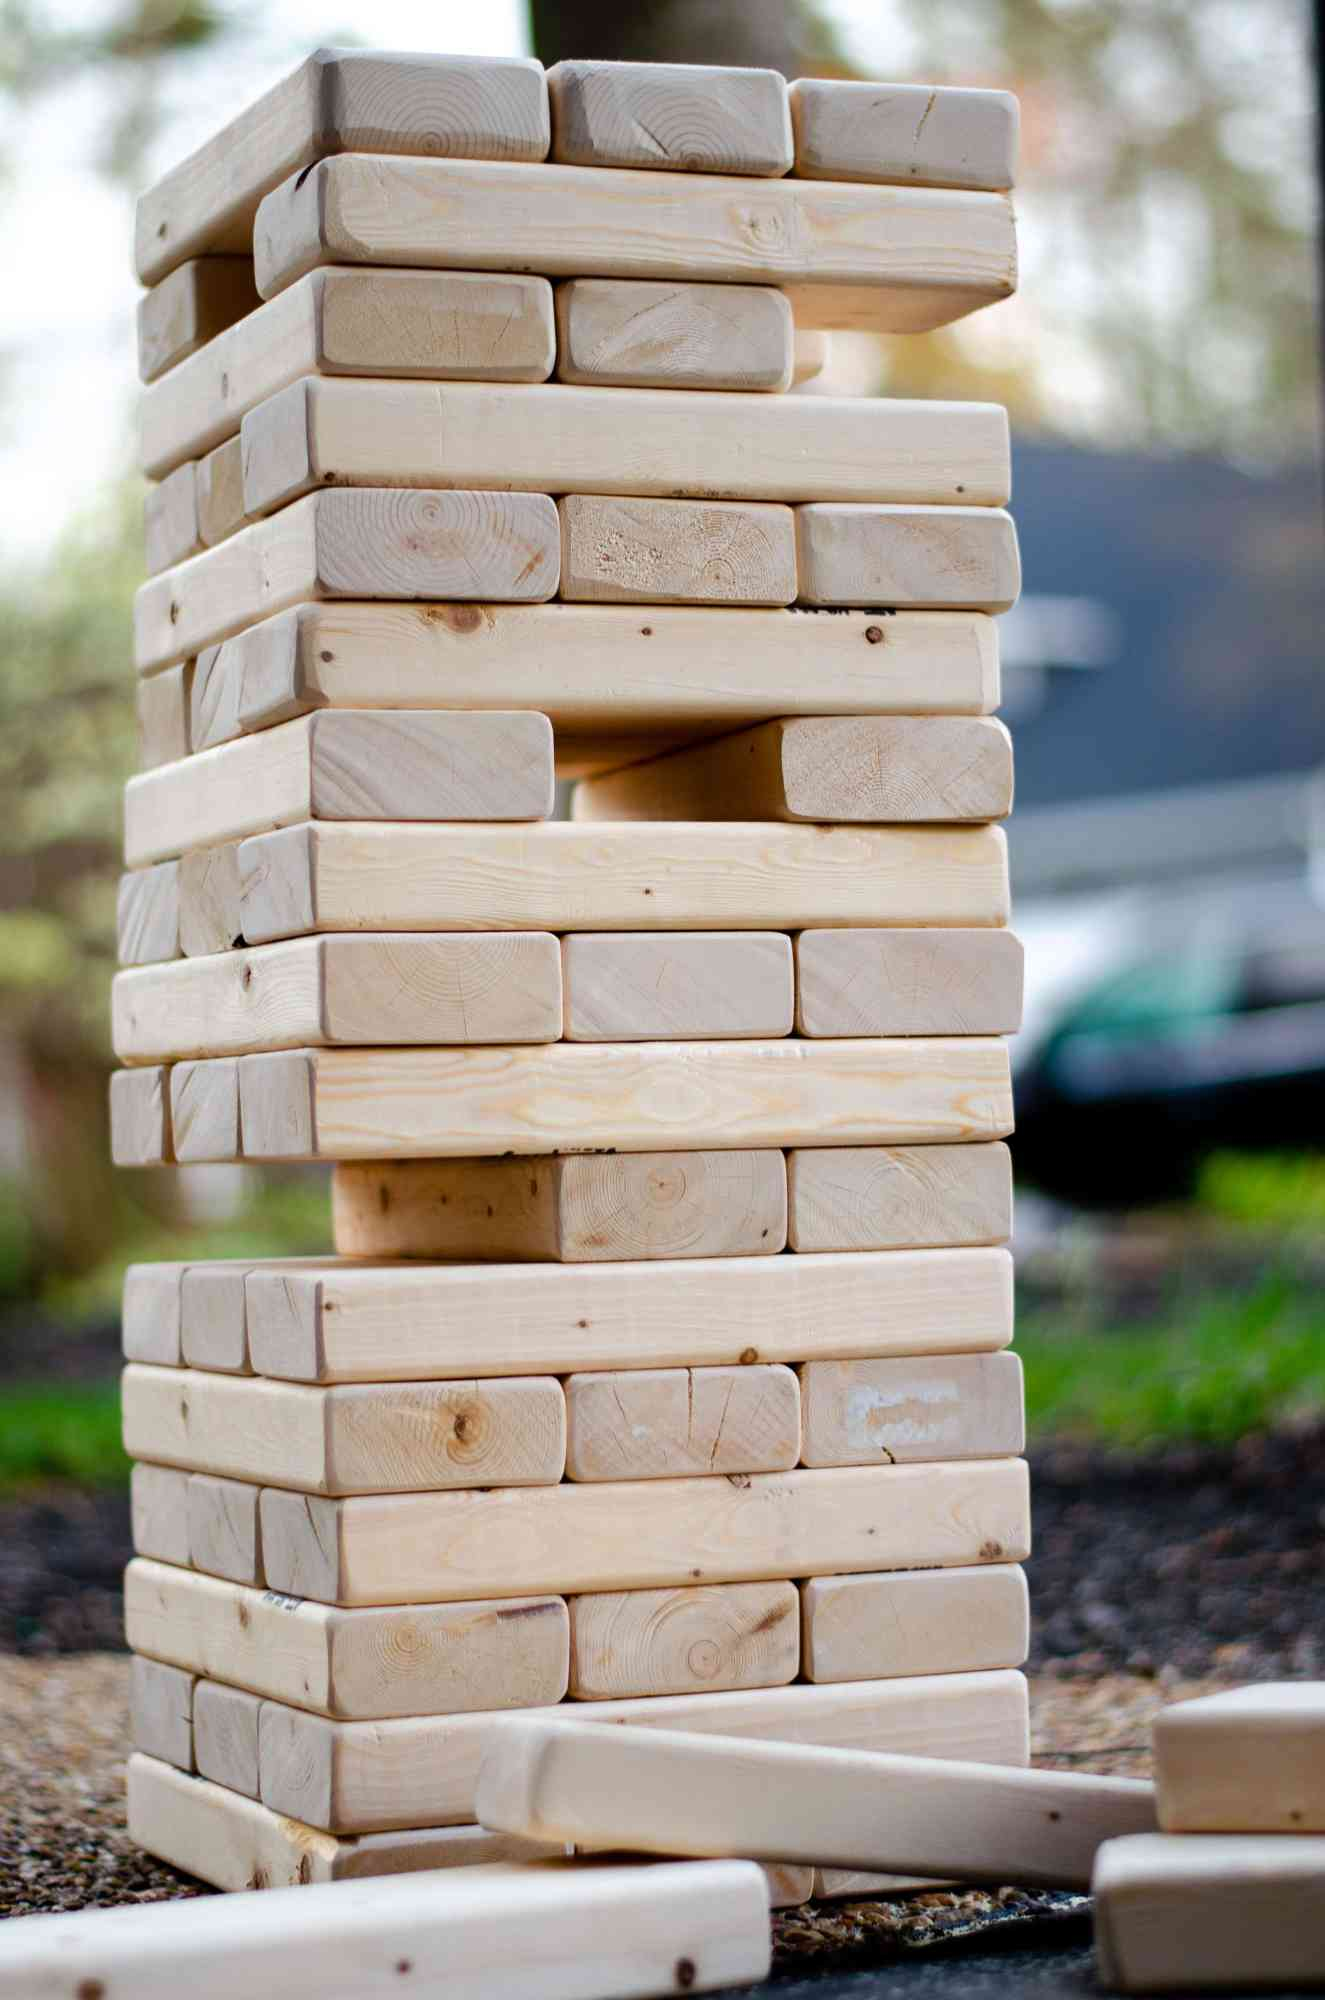 How to make a GIANT Jenga #jenga #giantjenga #yardgames #summergames #outdoorfun #summertimefun #kidsgames